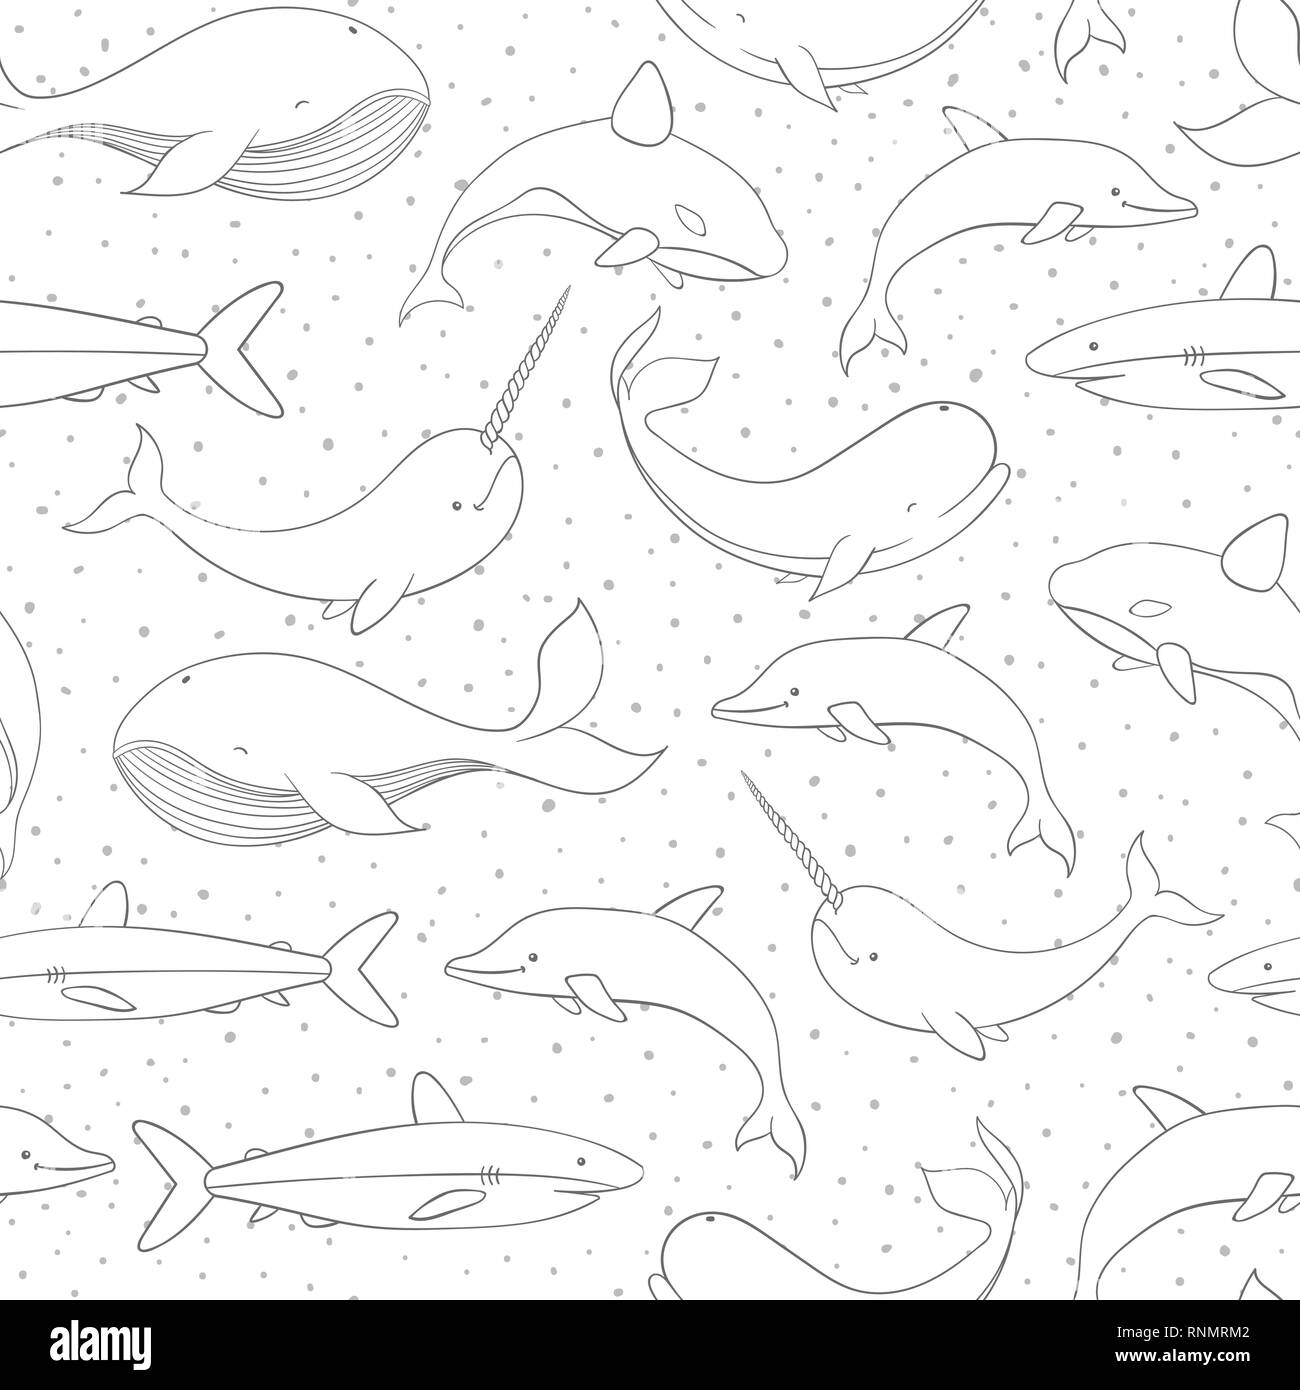 Vector seamless pattern with whale, shark, narwhal and dolphin contours on the polka dot white background. Sea creatures and marine life backdrop. - Stock Image